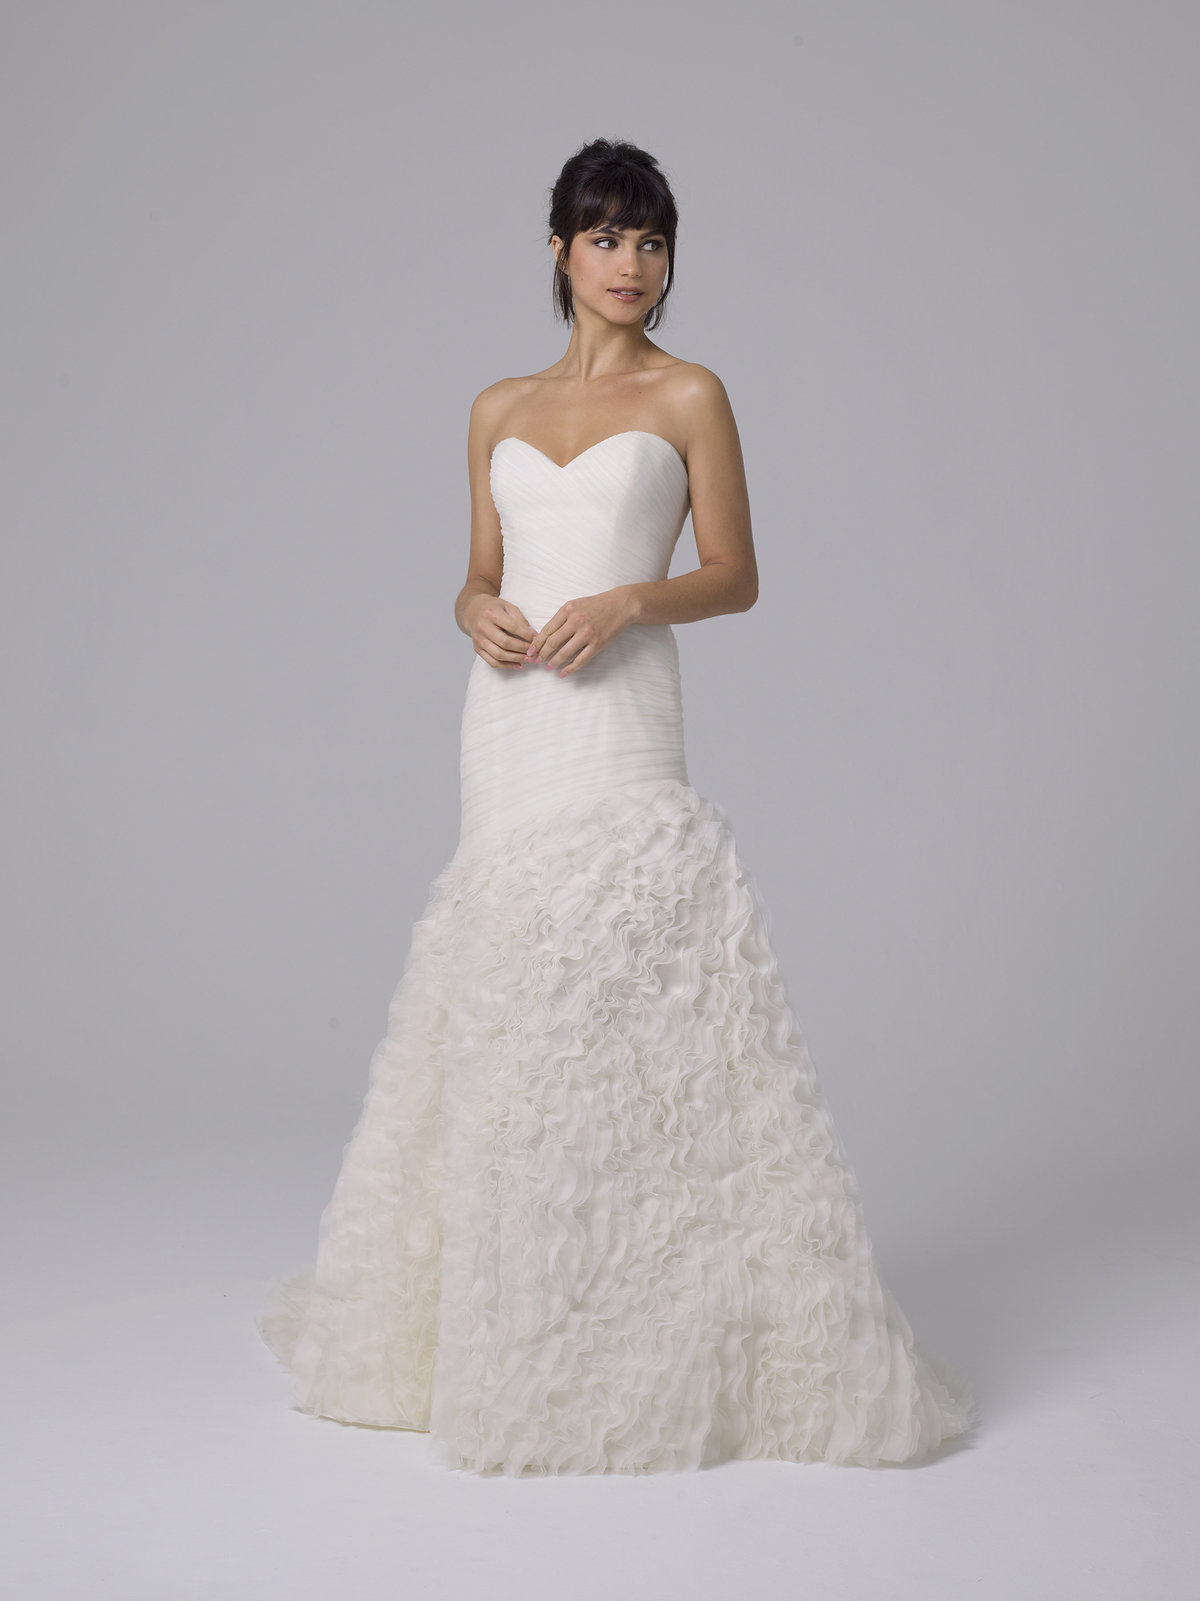 Liancarlo Drop Waist Fit to Flare Embellished Wedding Dress